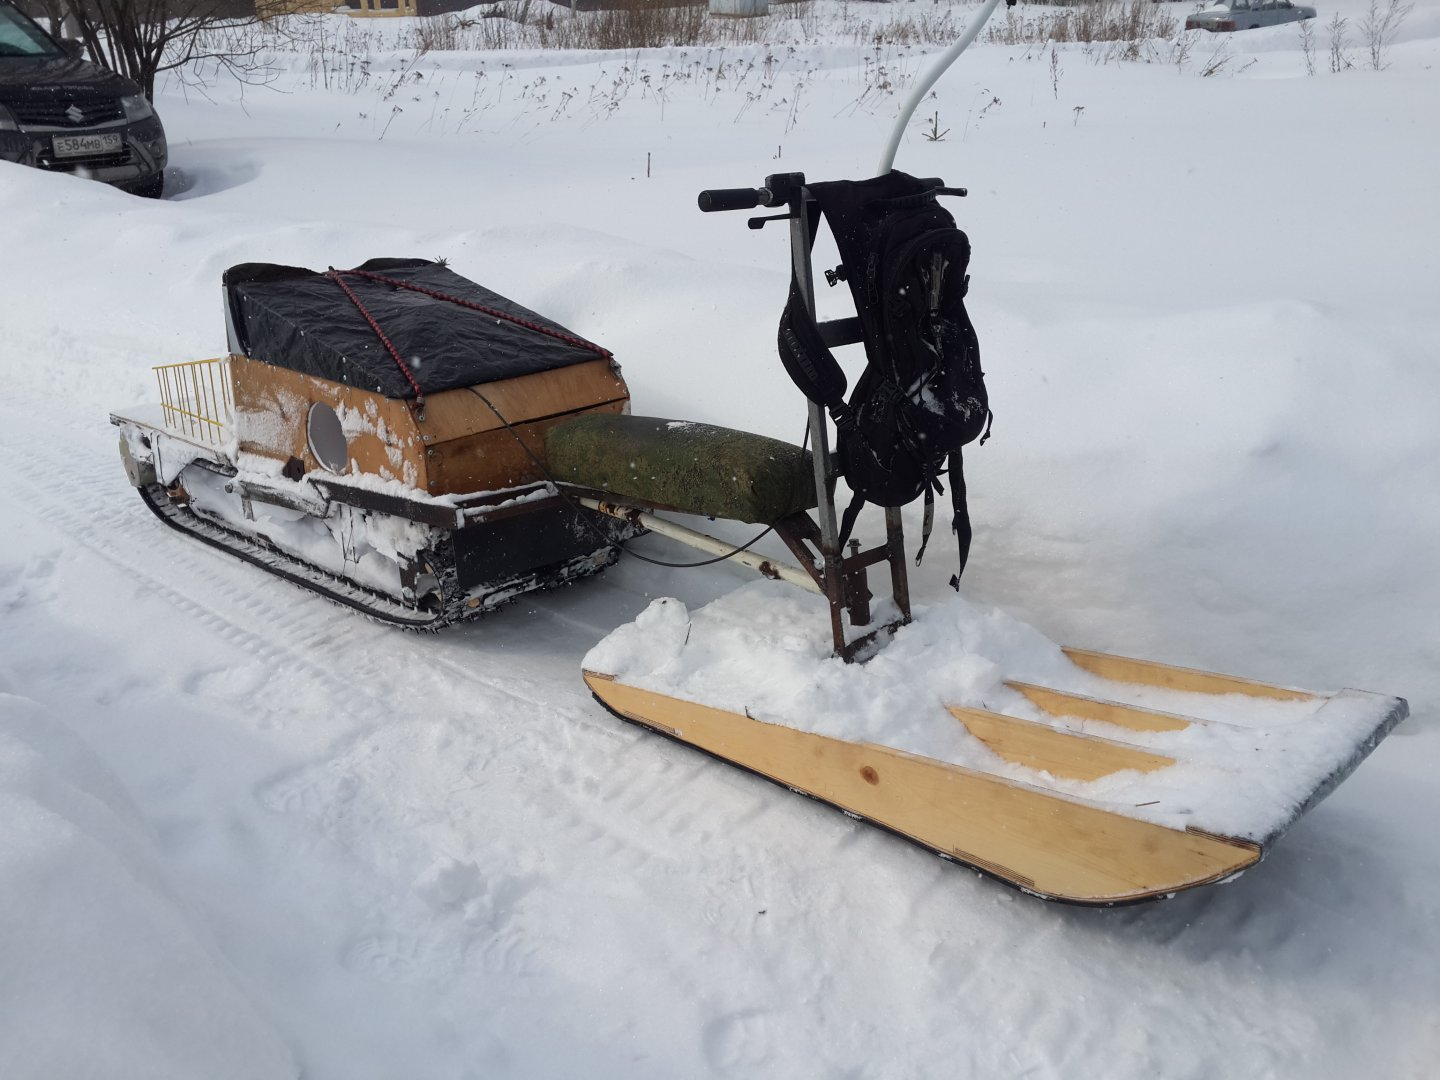 http://www.snowmobile.ru/forum/index.php?attachments/1241629/